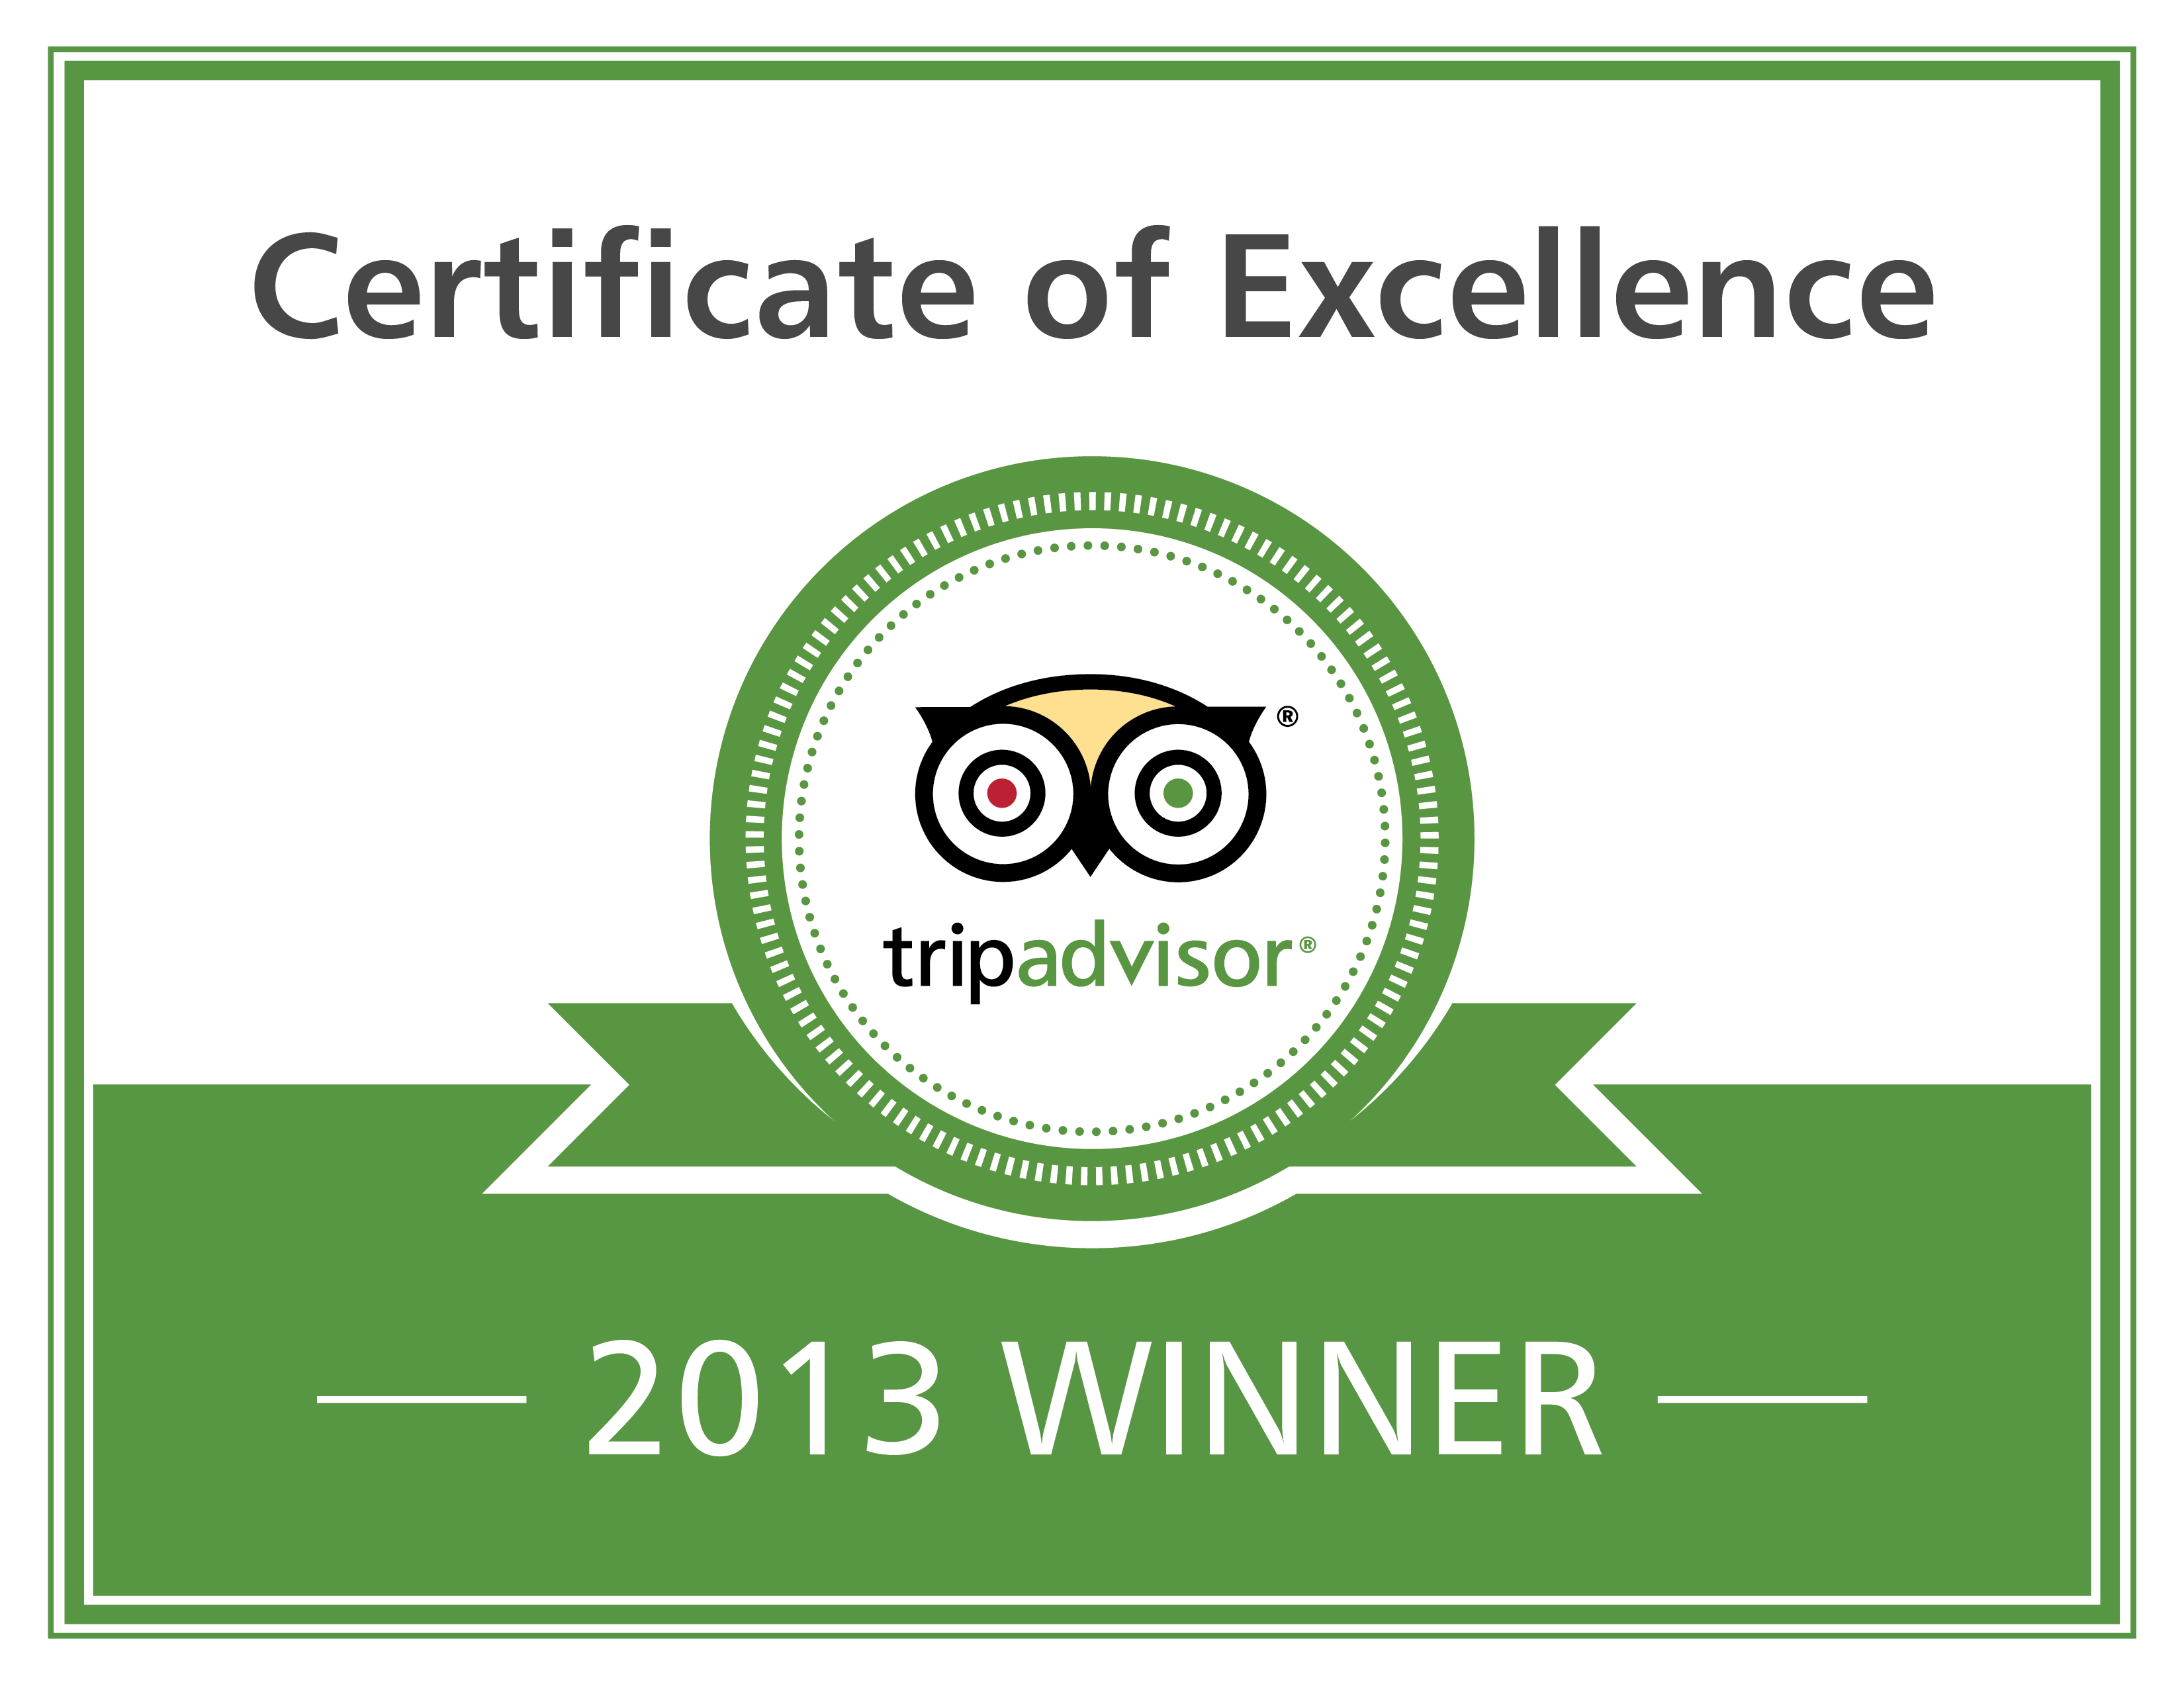 Excellence Badge from TripAdvisor